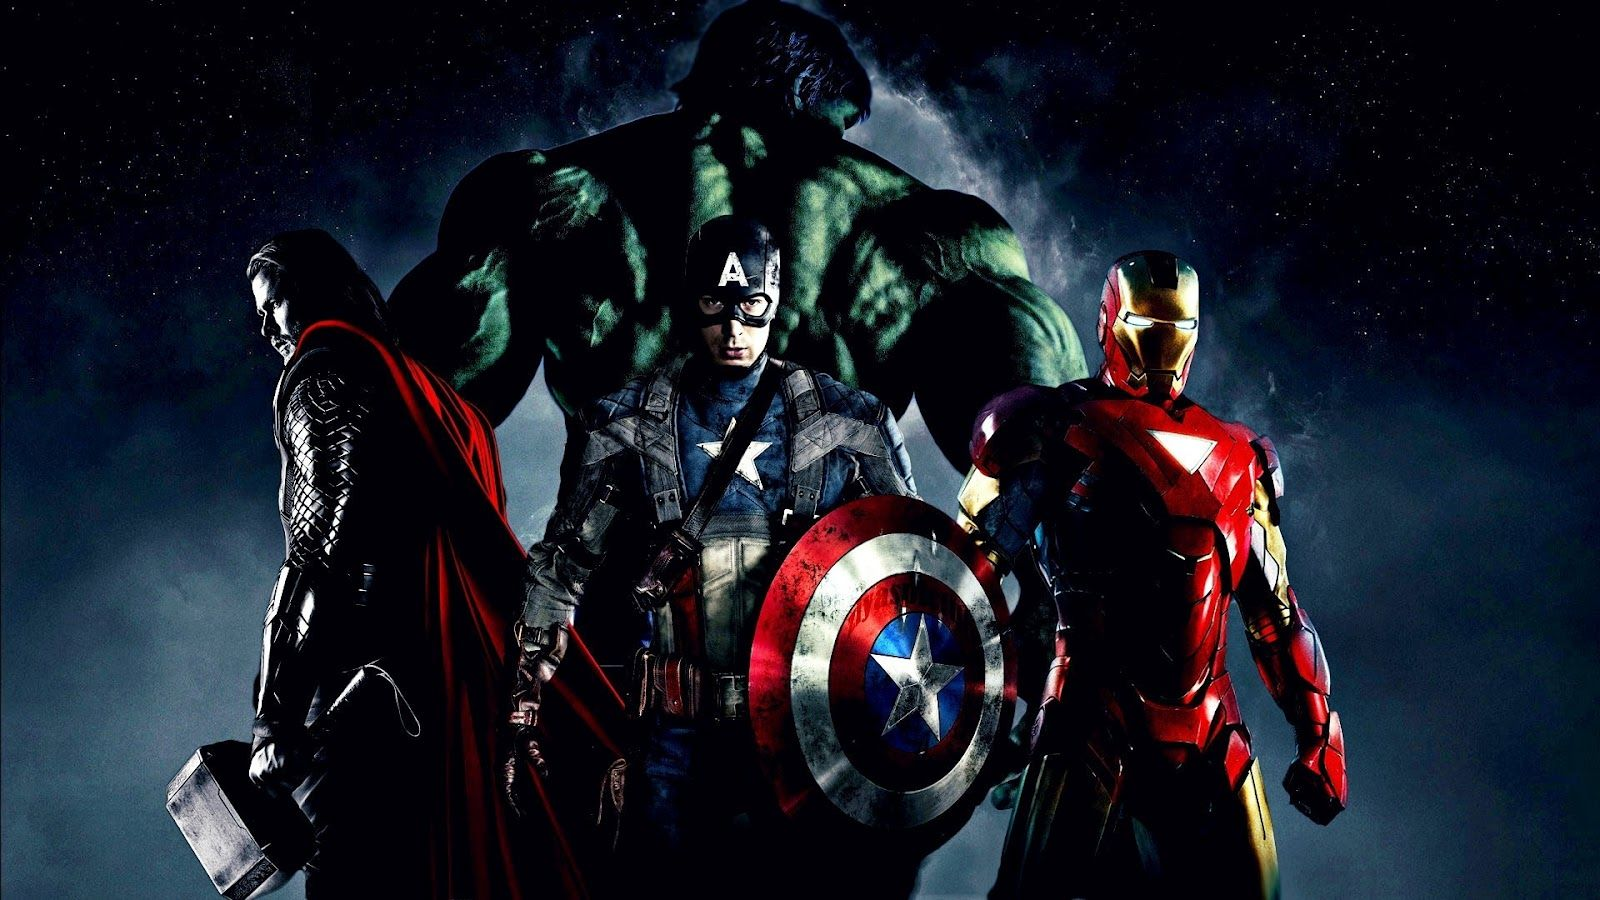 Simple Wallpaper Marvel Laptop - e8d836695436d2d371f5a353c860c201  Perfect Image Reference_80331.jpg